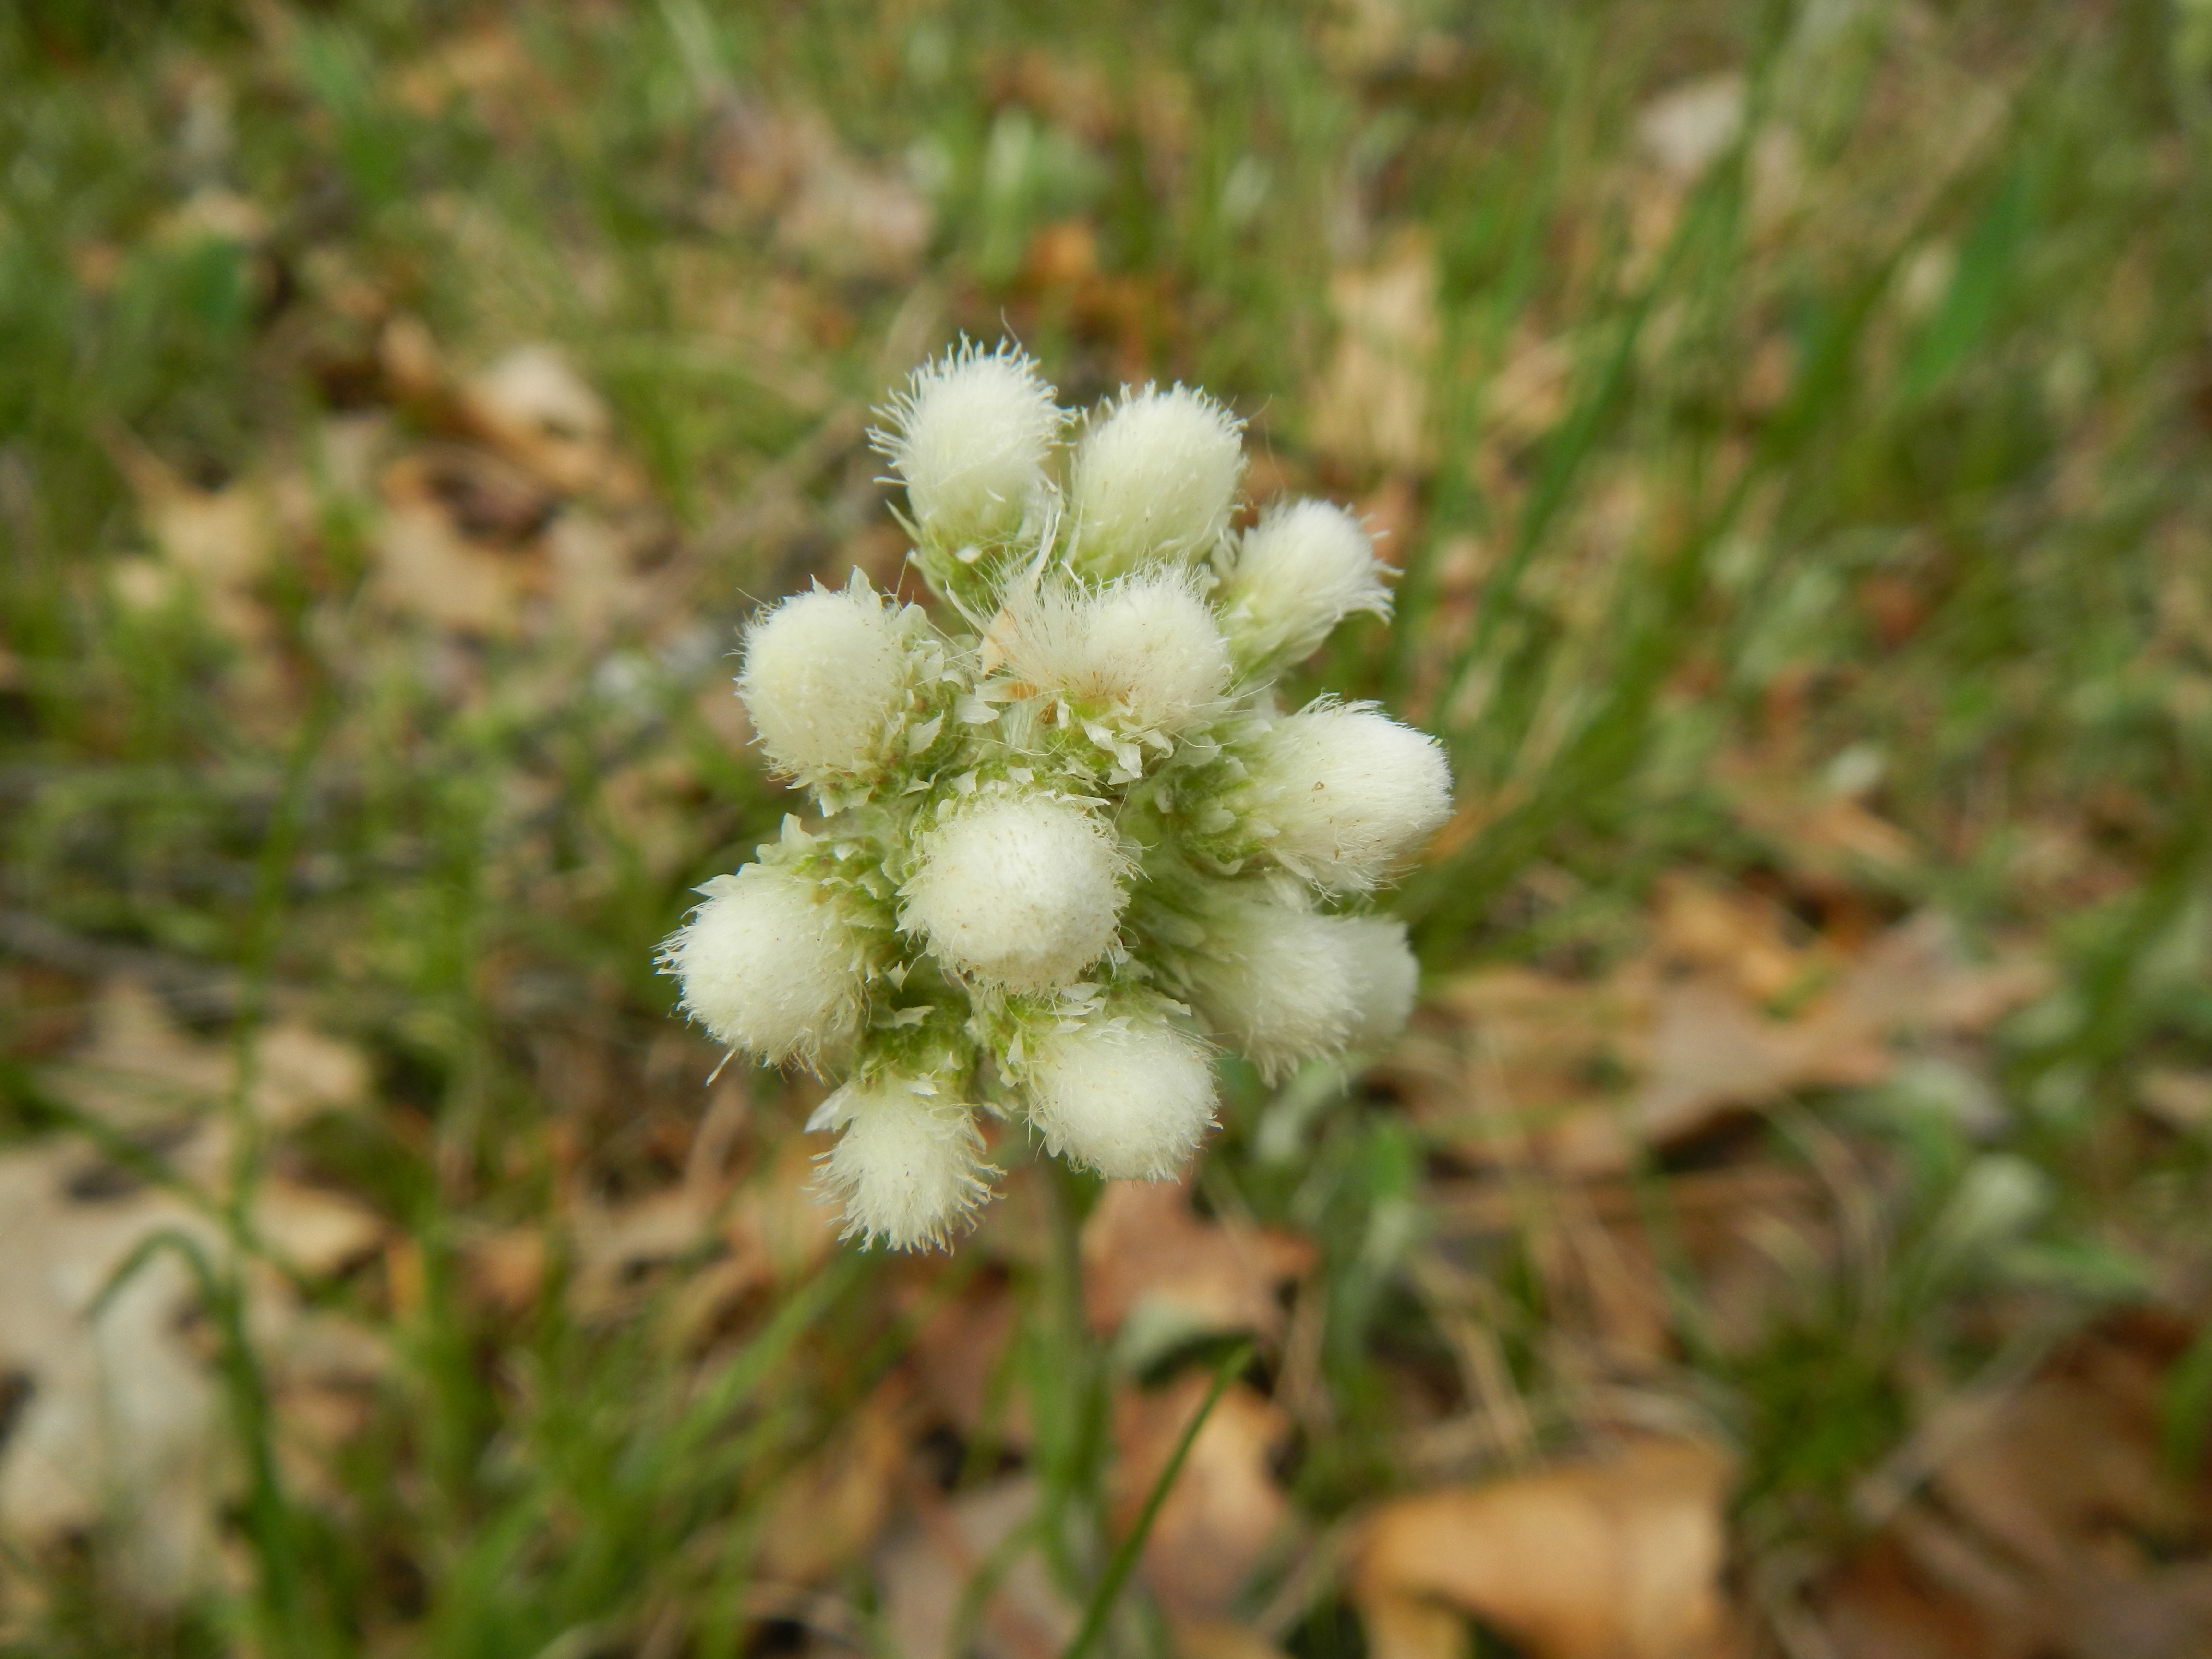 Pussytoes (Antennaria howelli)